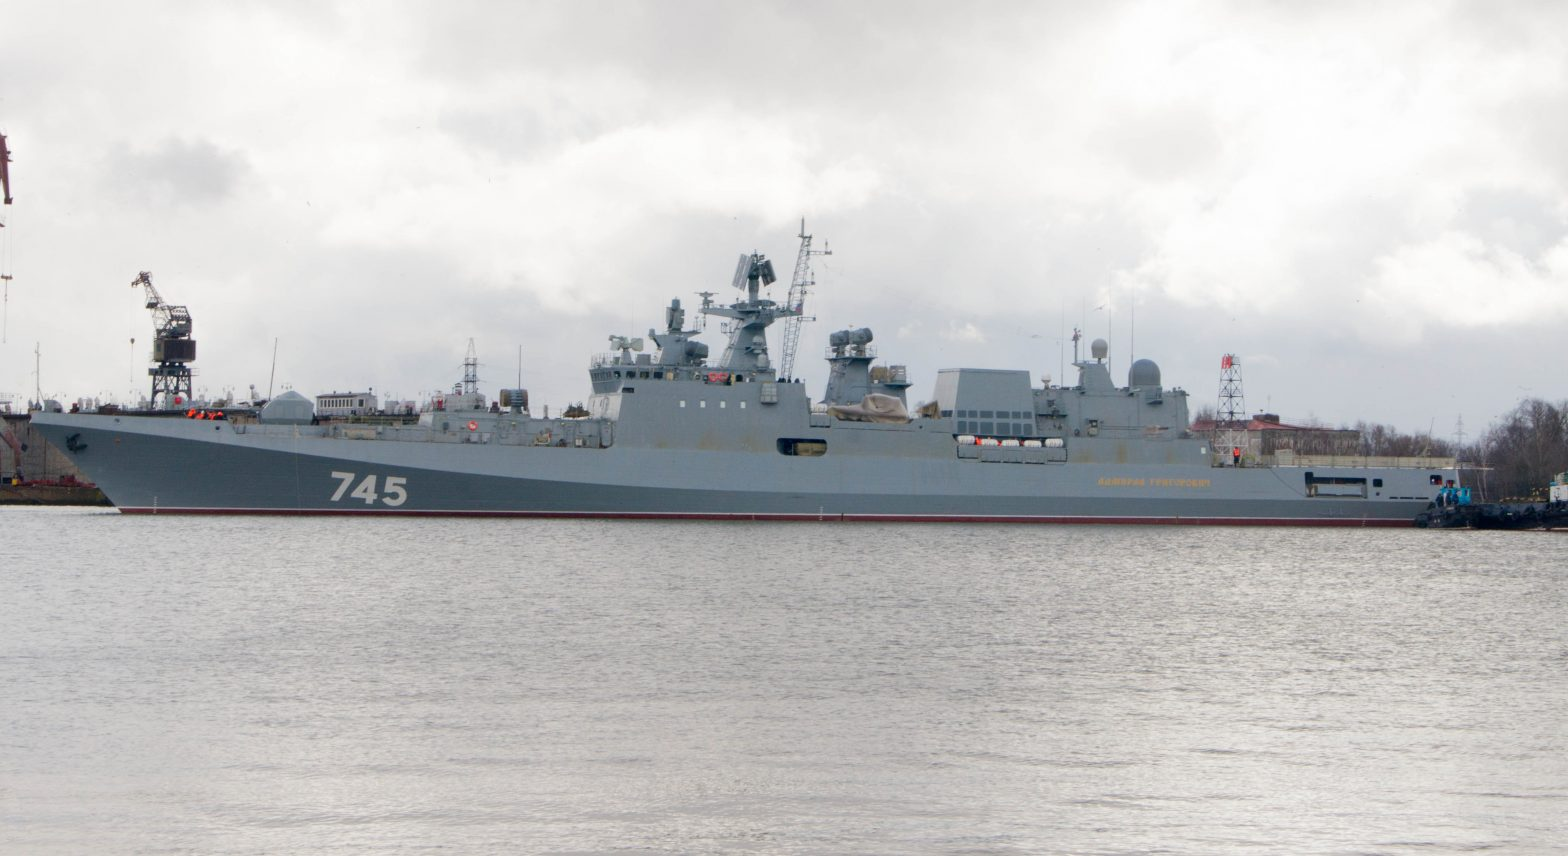 Russian Navy received 3rd Ship of Project 11356 frigate (Admiral Grigorovich Class)